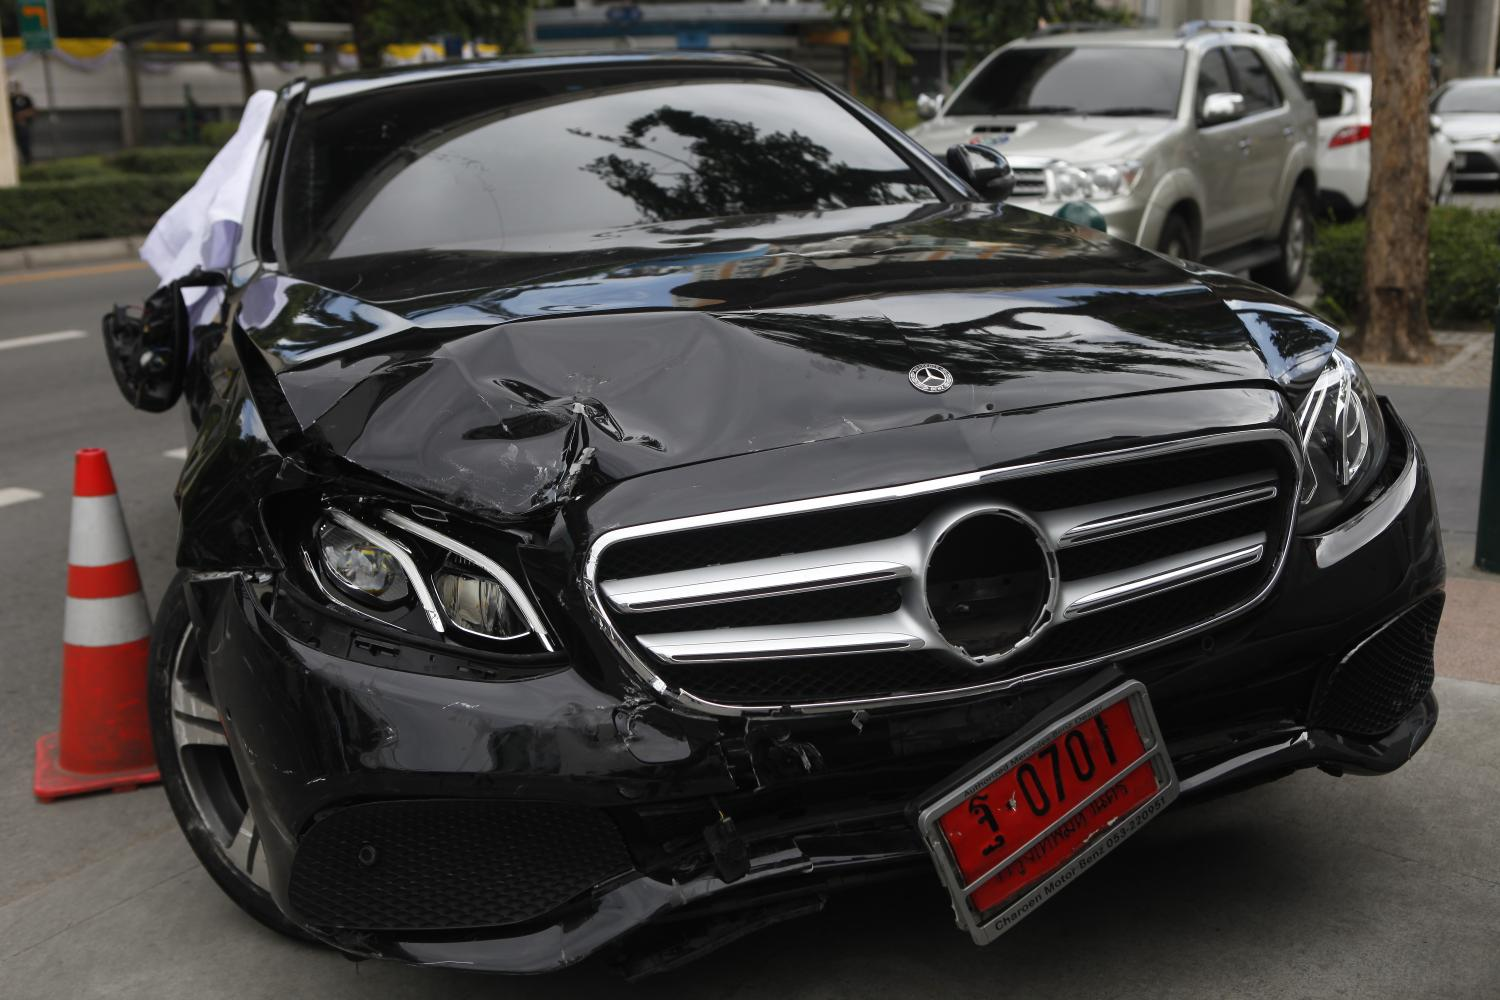 The Mercedes-Benz is seen with damage after the incident